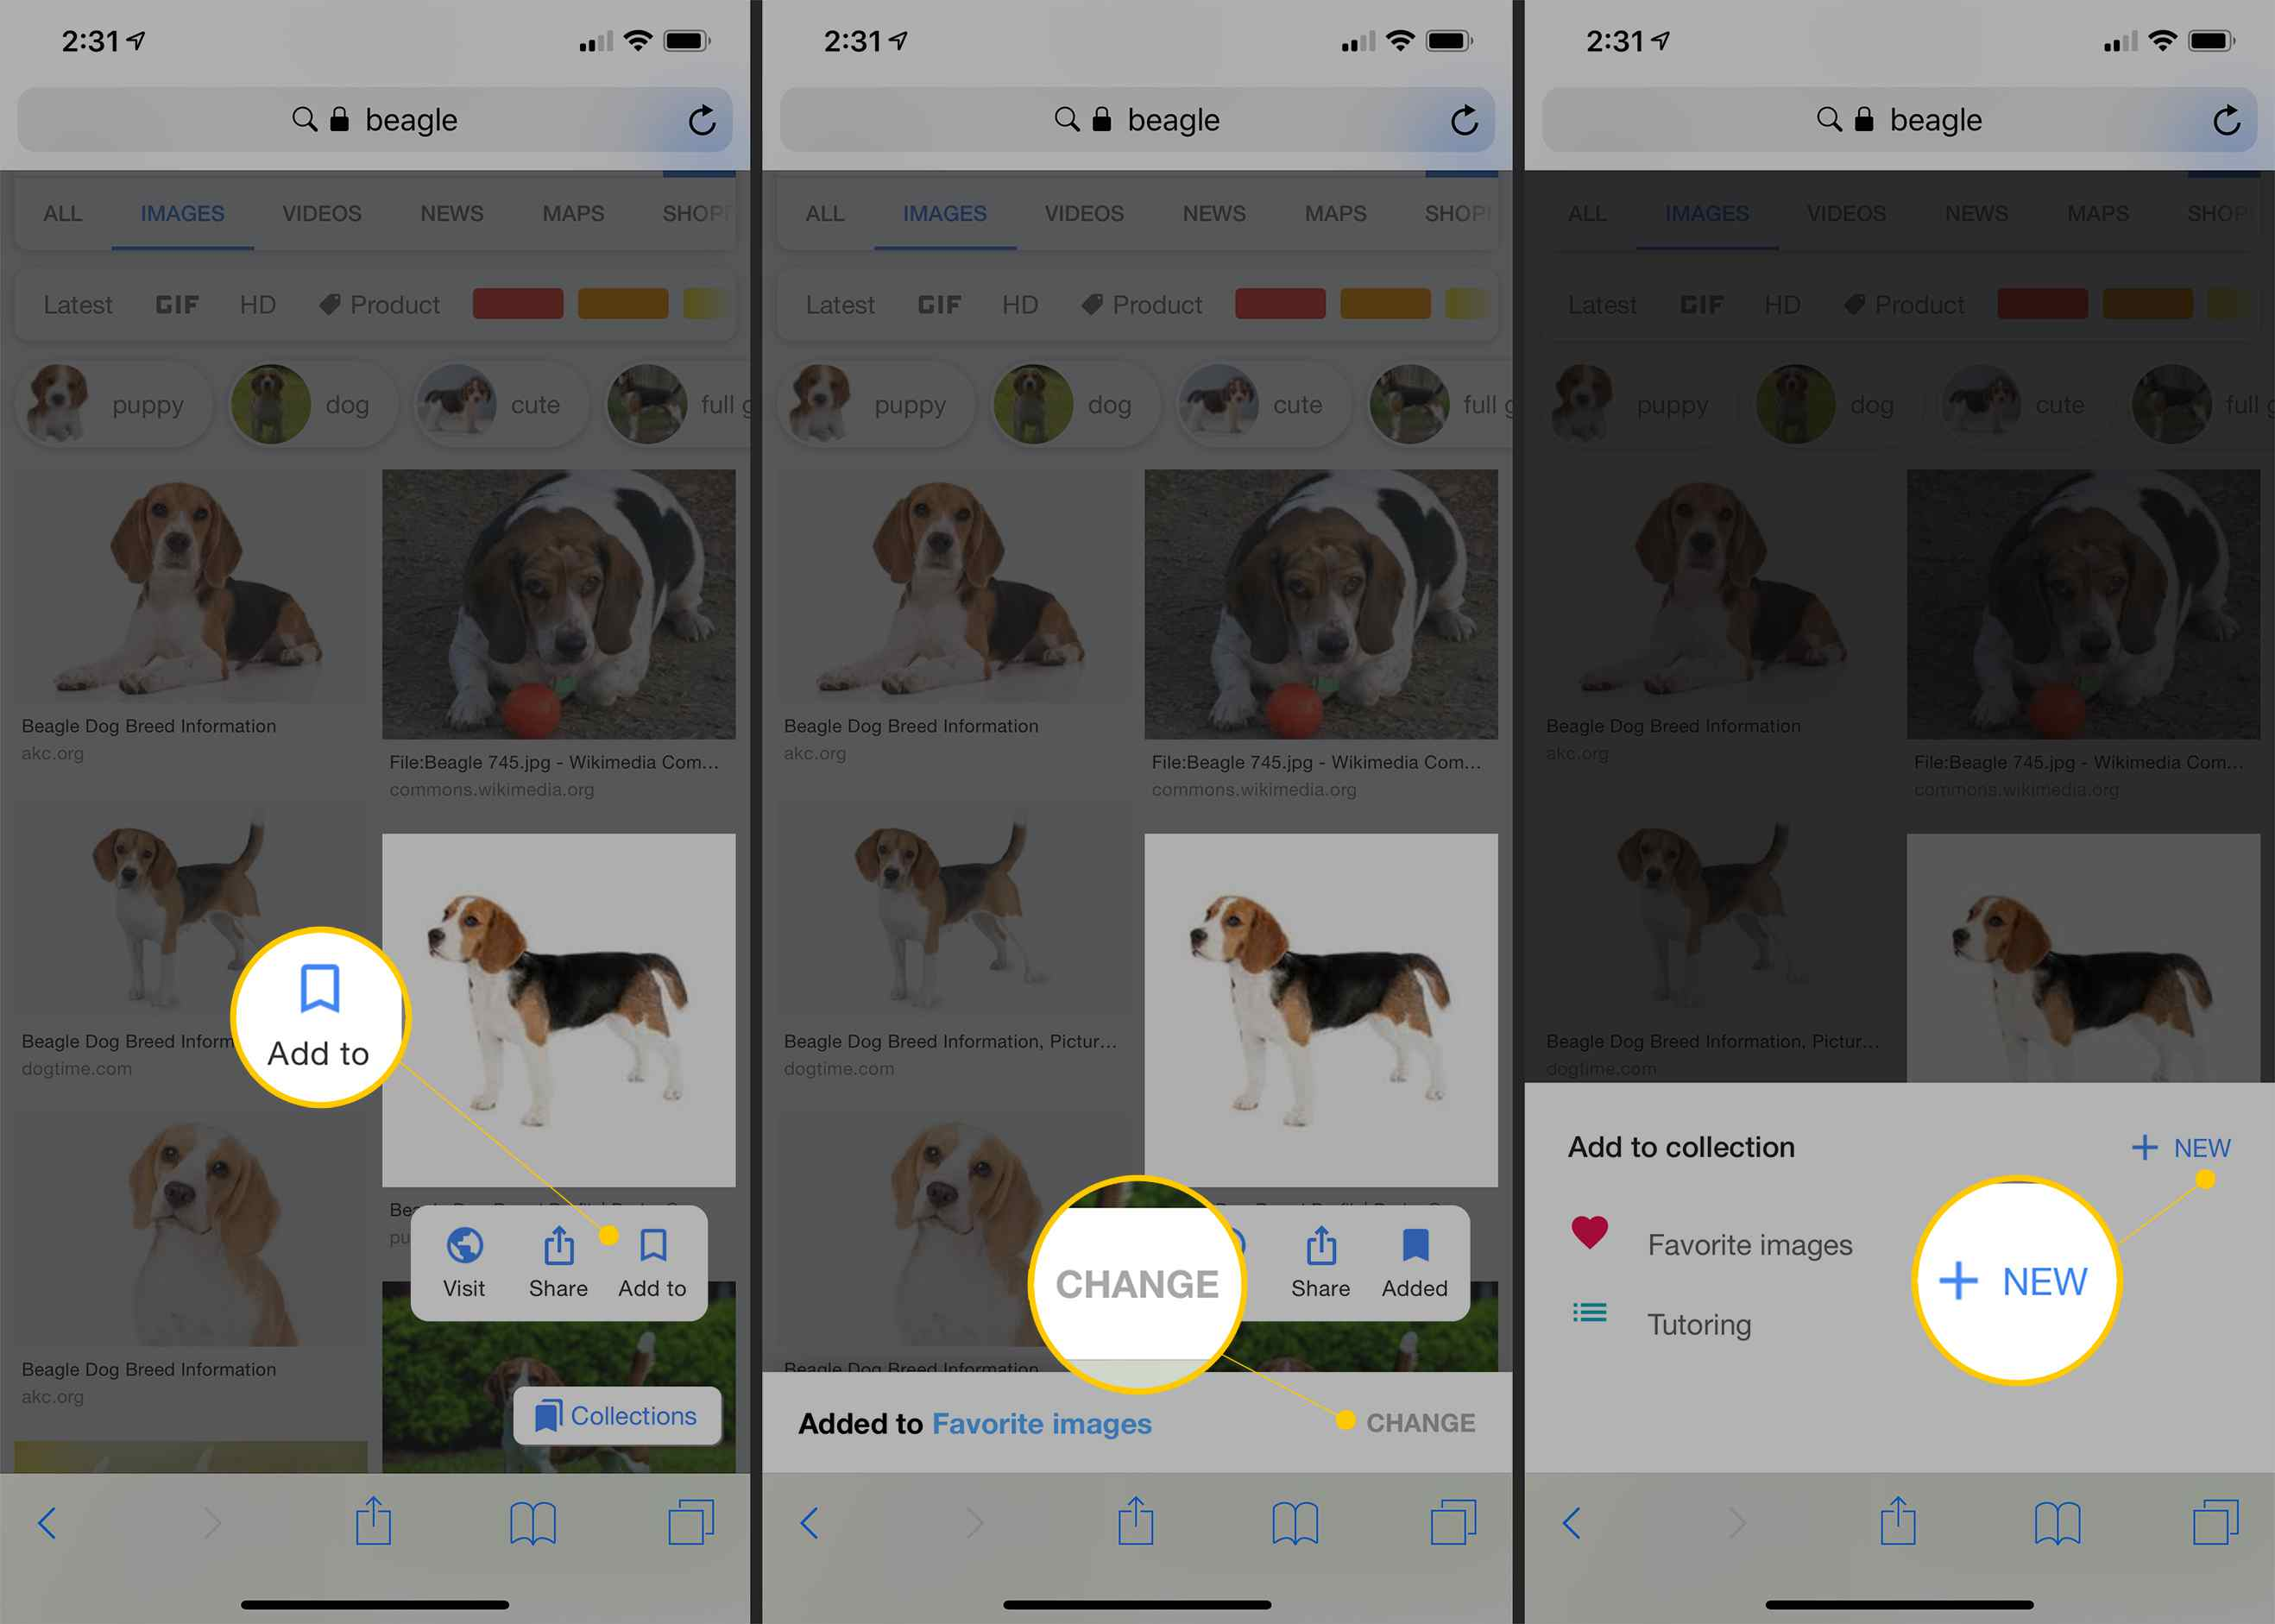 Add to, Change, and +New buttons in Google Images on iOS